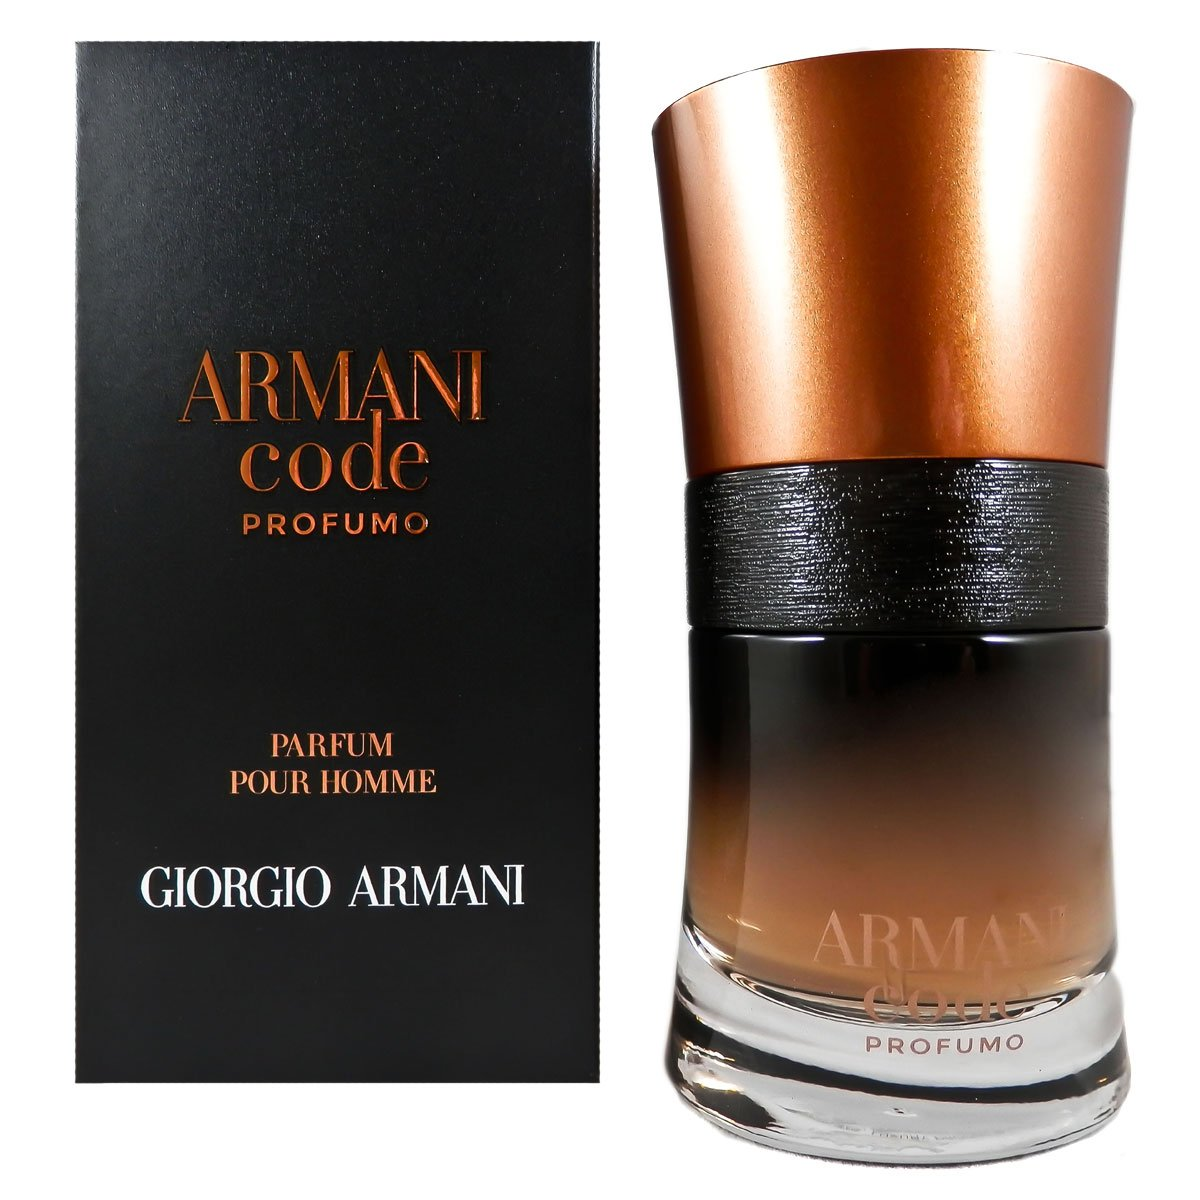 Armani Homme ukBeauty MlAmazon Profumo co Edp Spray30 Pour Code v8mnNw0